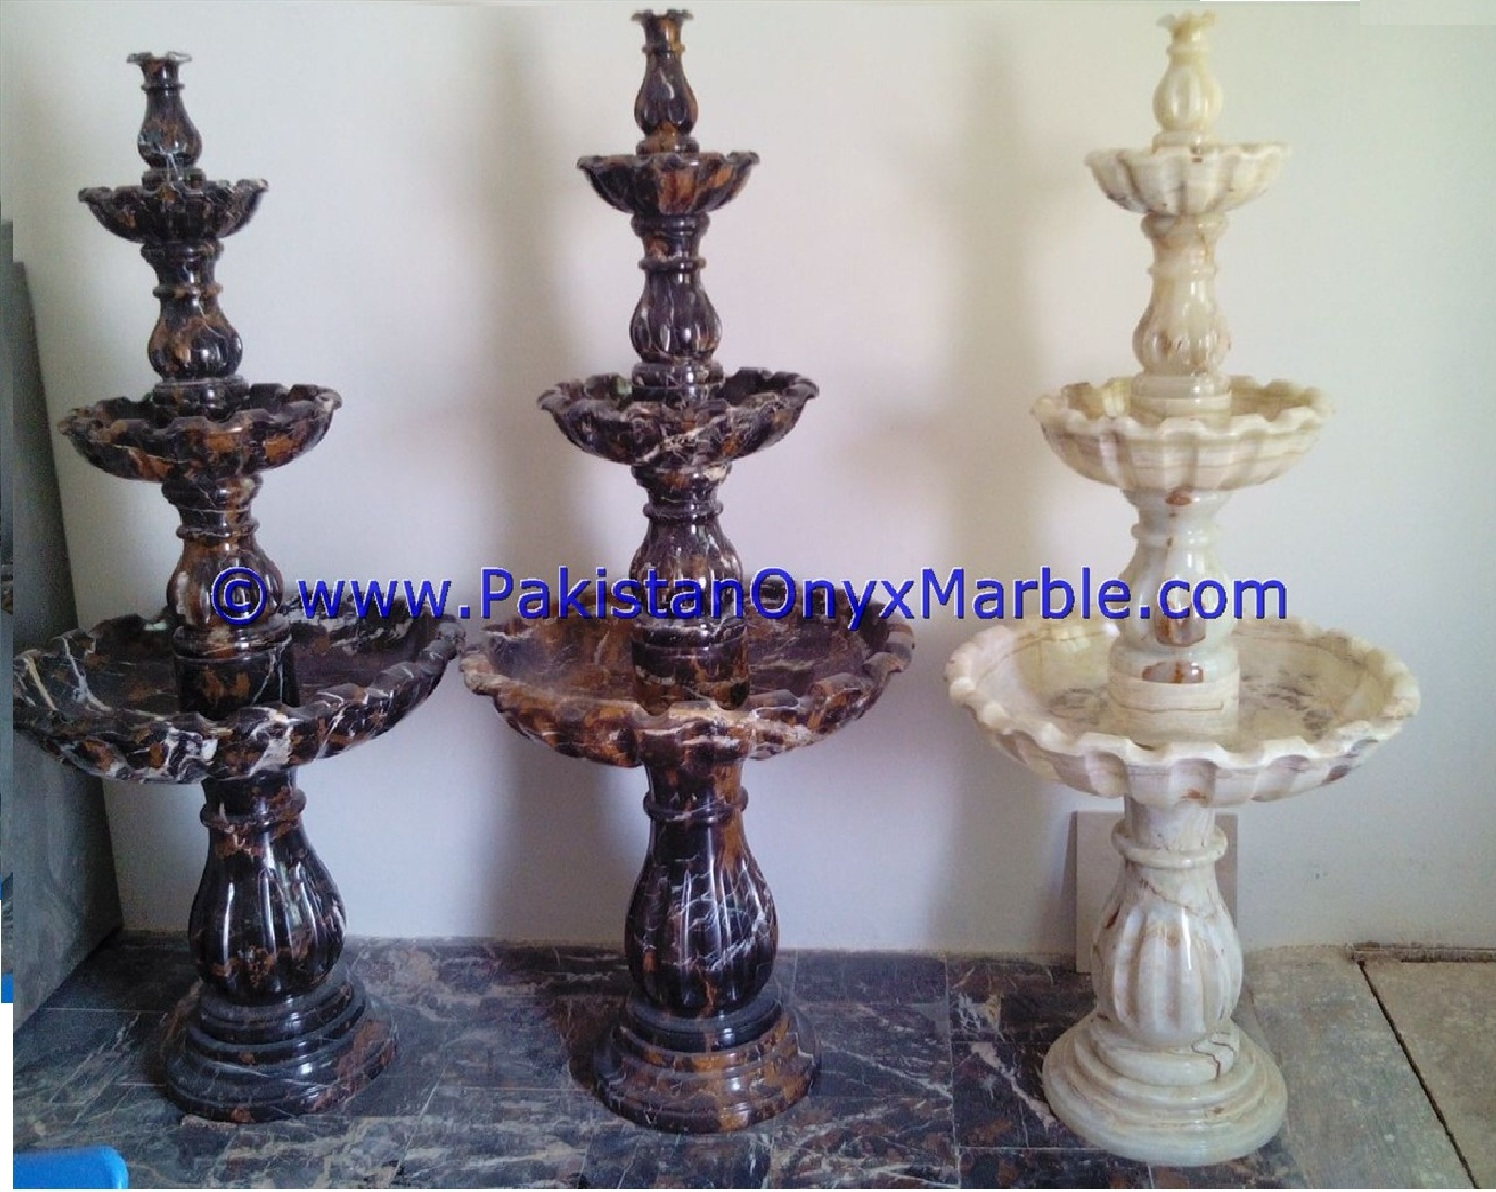 White Onyx Fountains, Indoor Fountains, Out Door Fouintains